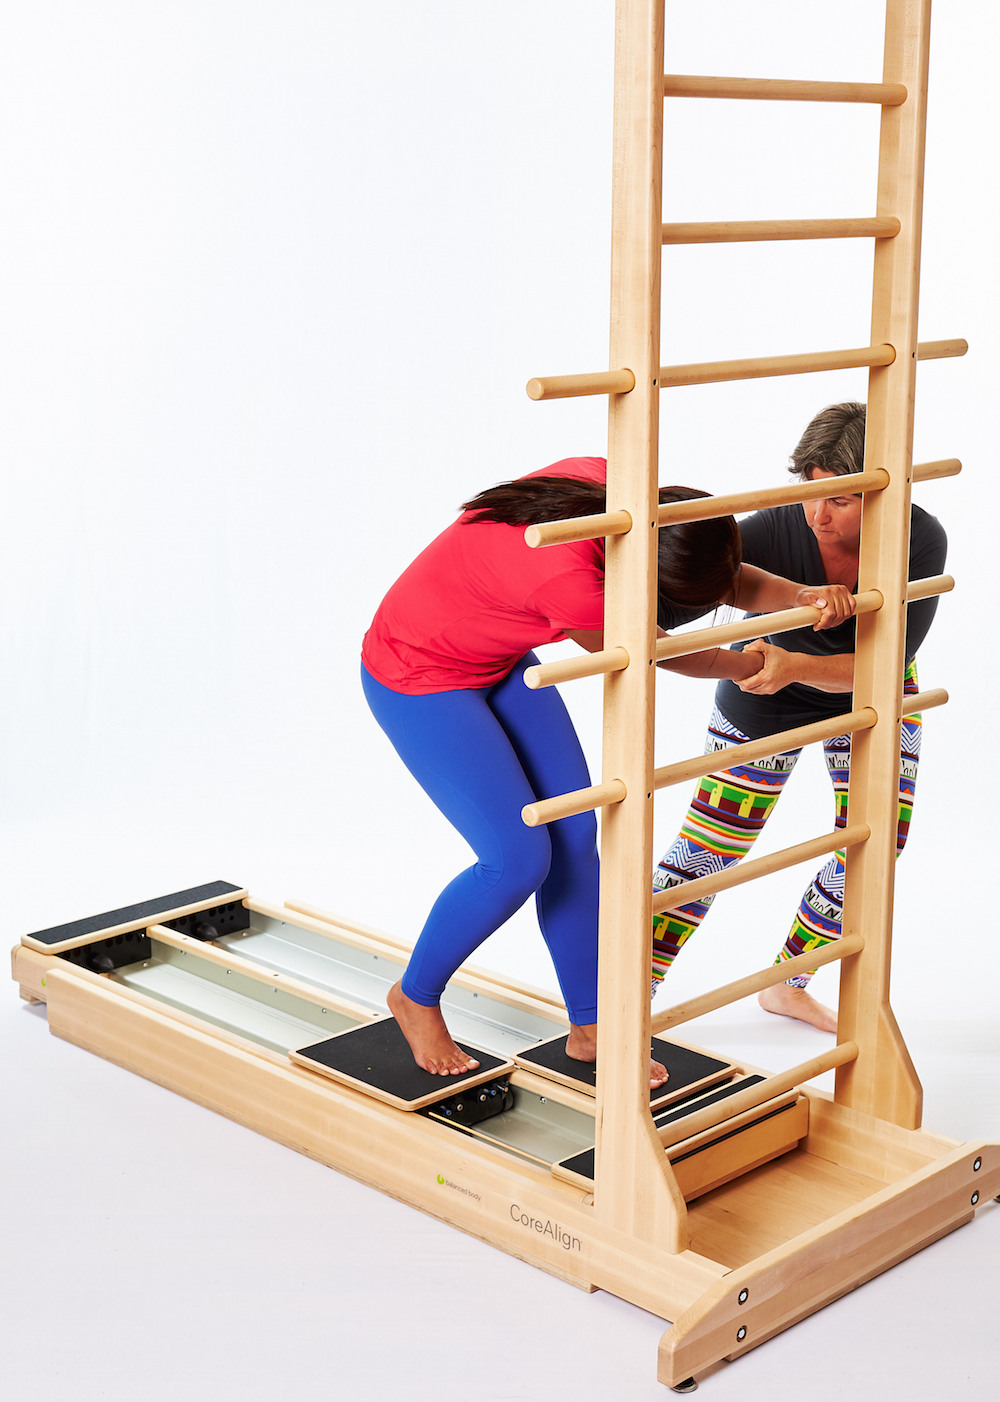 CoreAlign stand up pilates for surfing